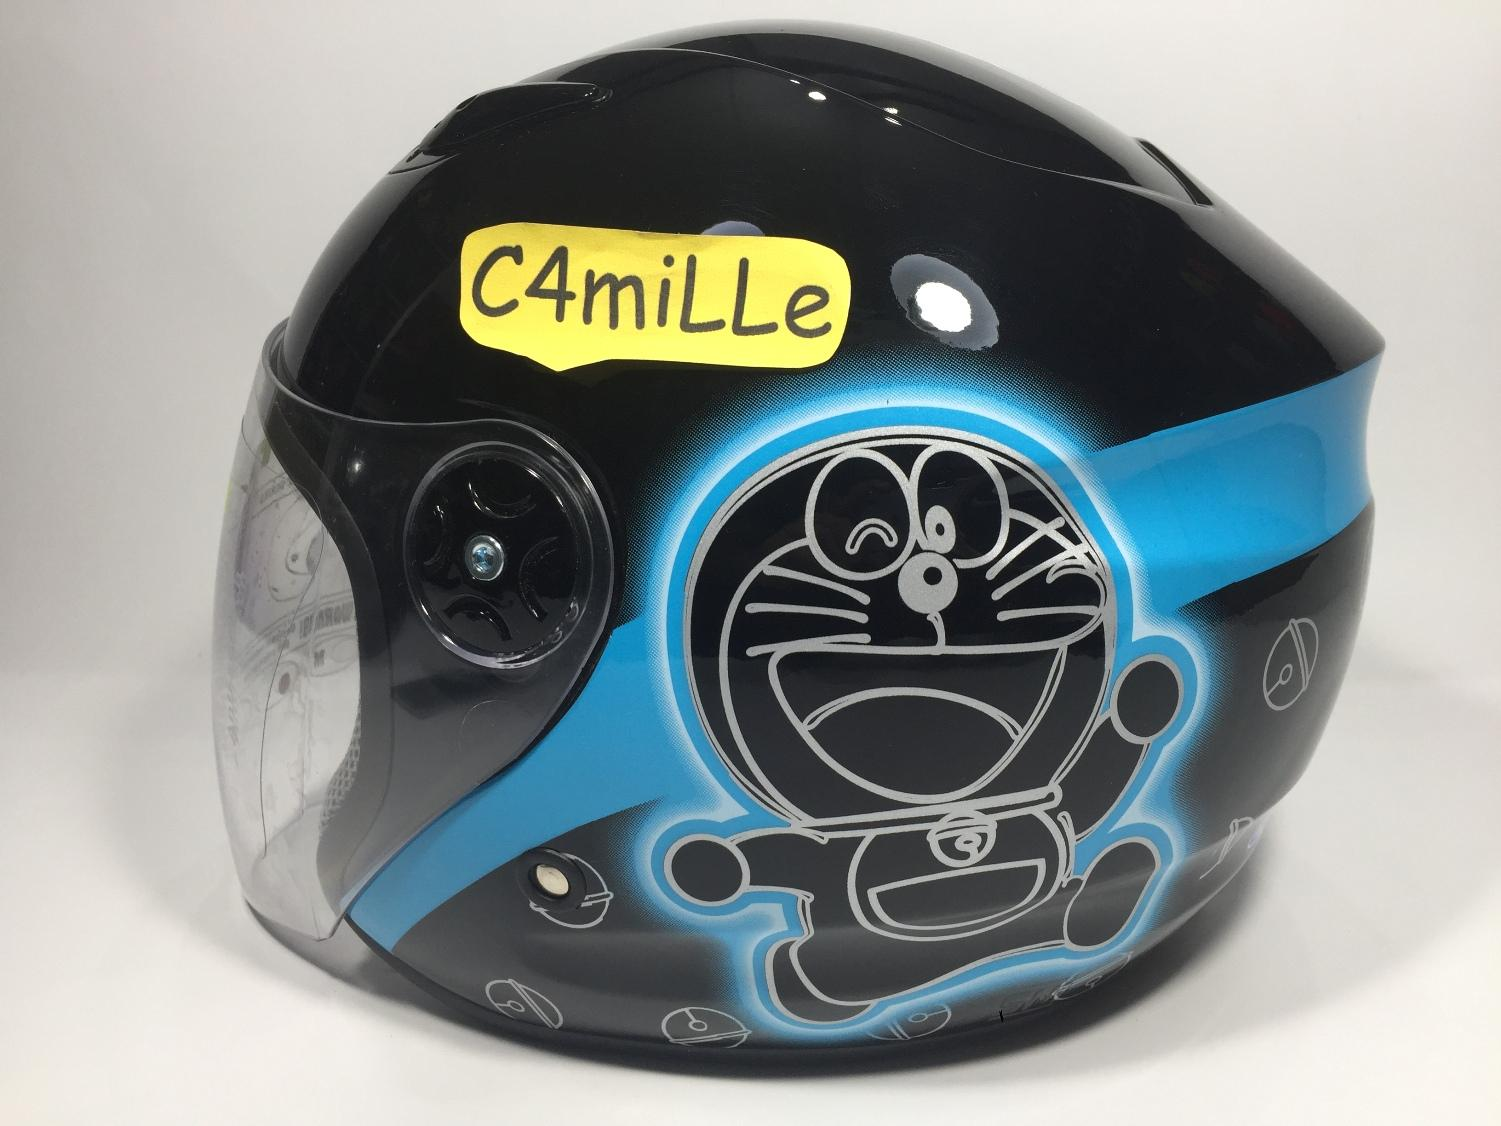 HELM BMC MILAN DORAEMON CAT SILUET BLACK BLUE HALF FACE